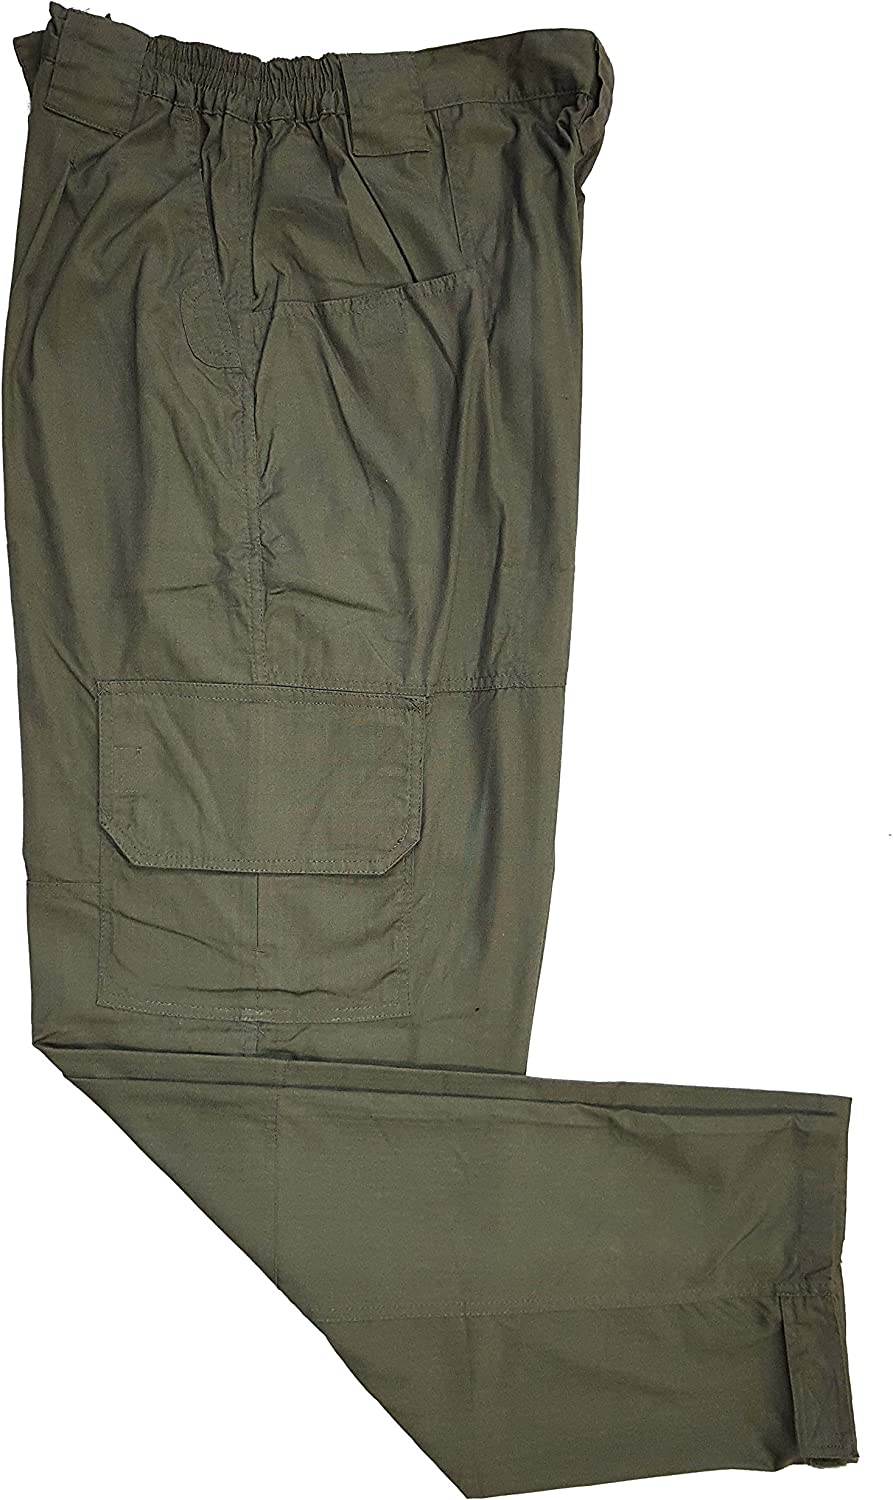 Military Outdoor Clothing Never Pants Tactical Diplomat Ranking TOP15 cheap Issued